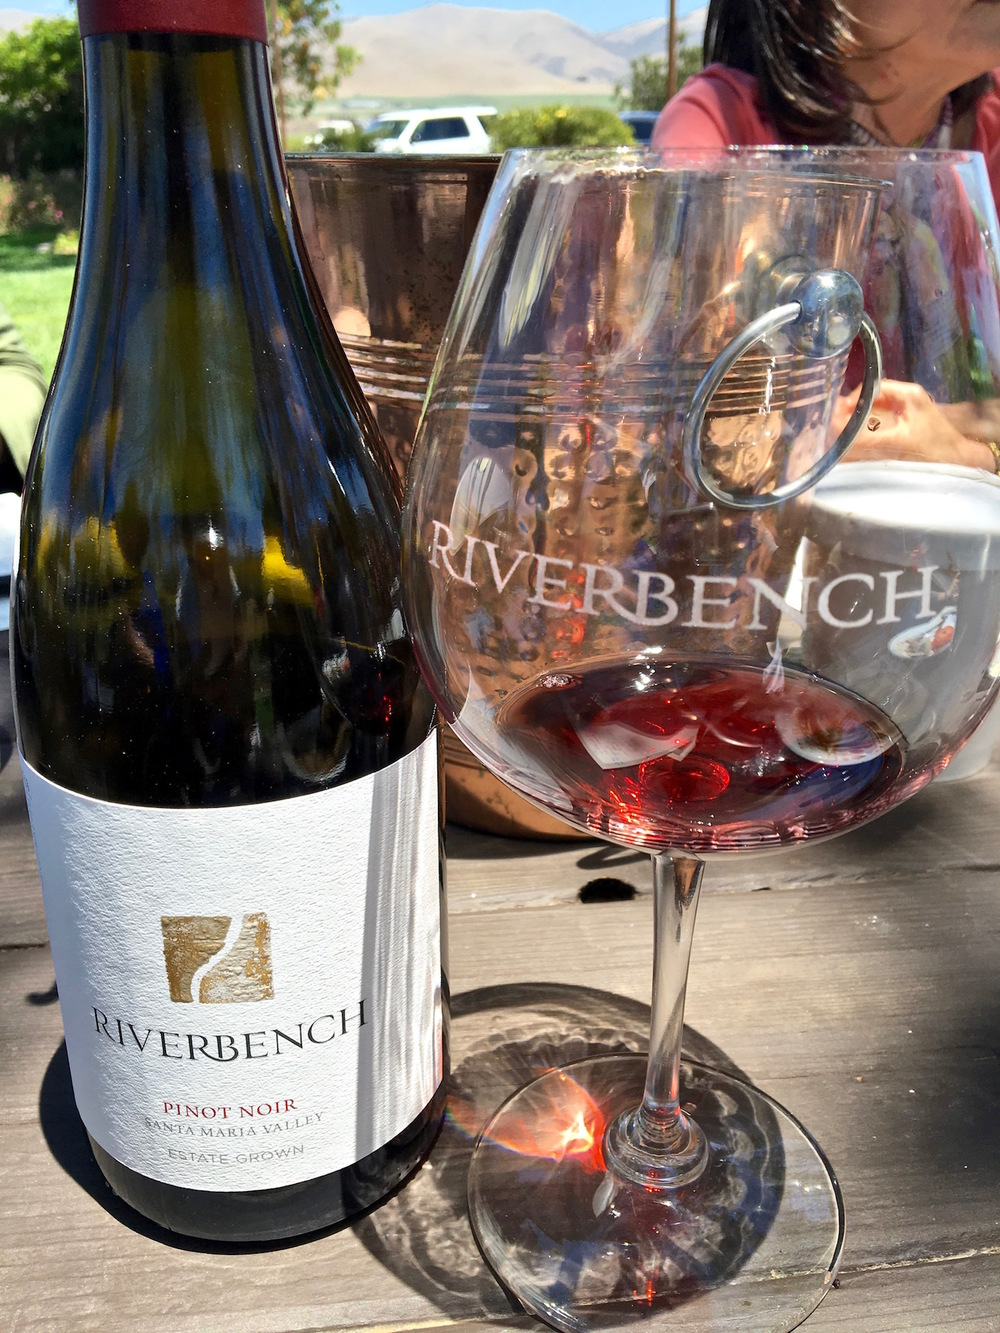 Riverbench Pinot Noir.jpg